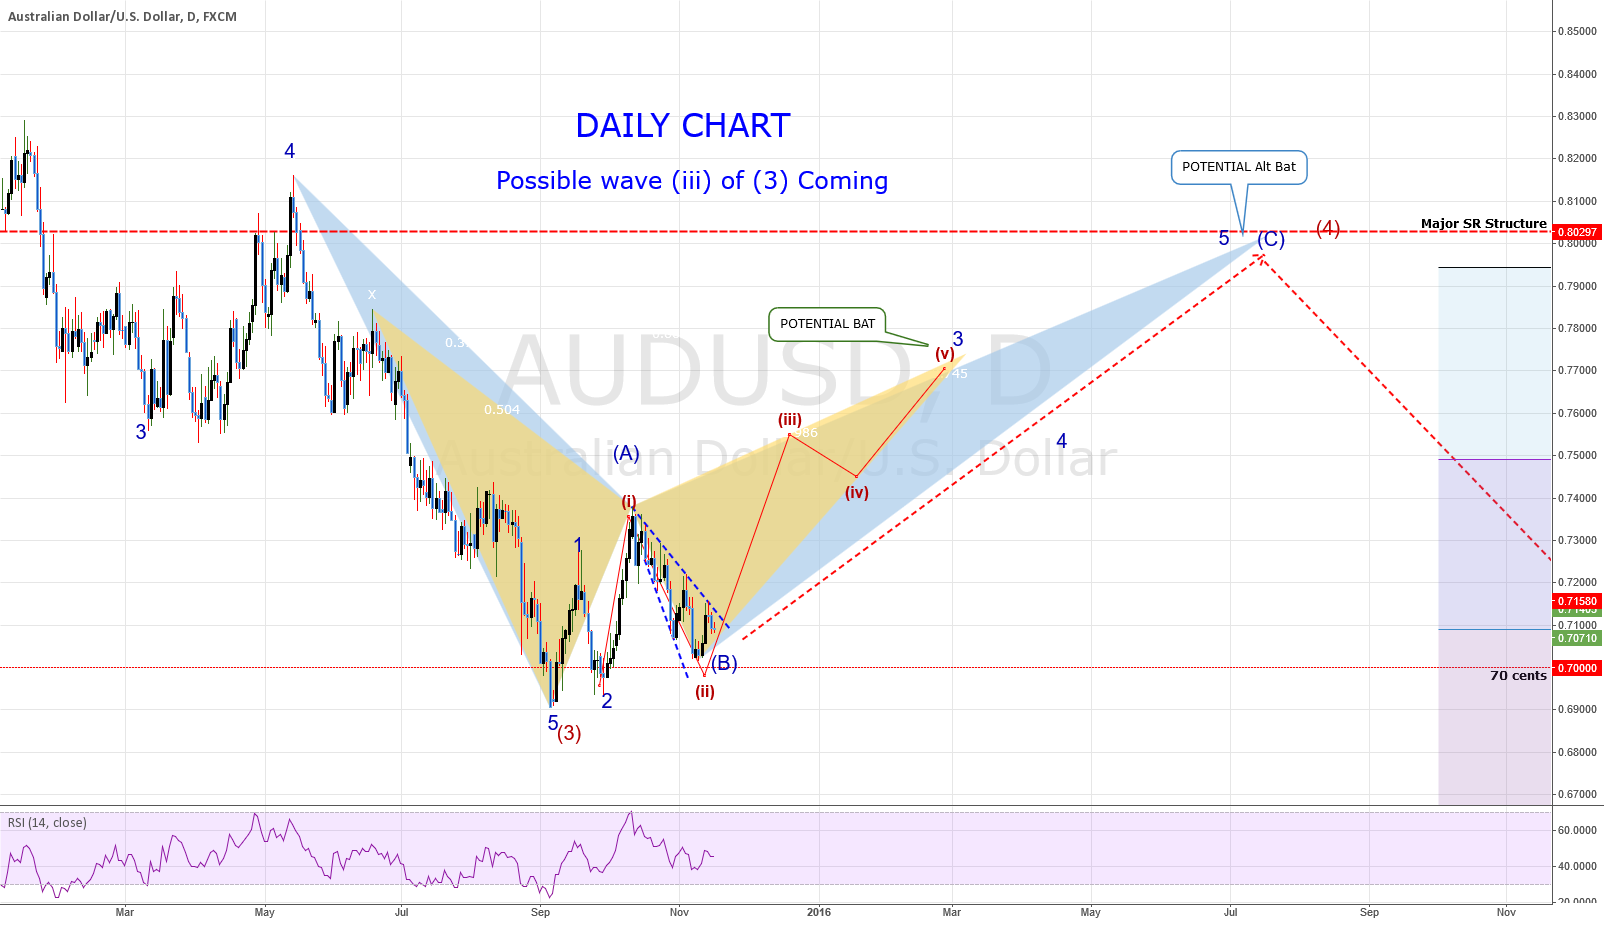 AUDUSD: DAILY Chart - Wave Count + Patterns = Wave 3 of 3 Coming